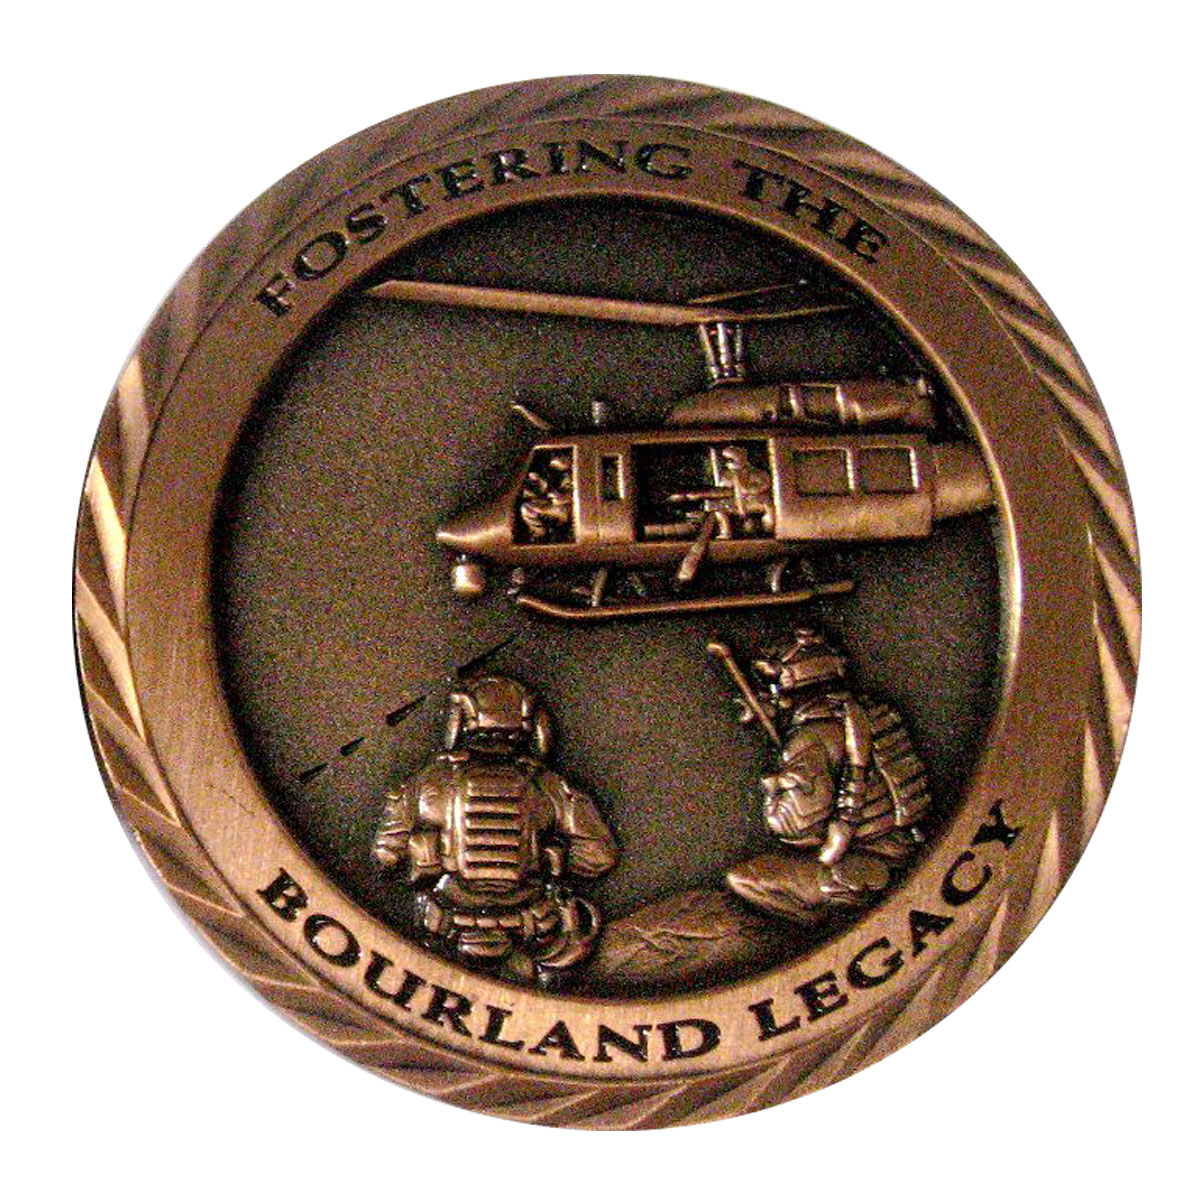 Postering The Bourland Legacy - Copper Challenge Coin